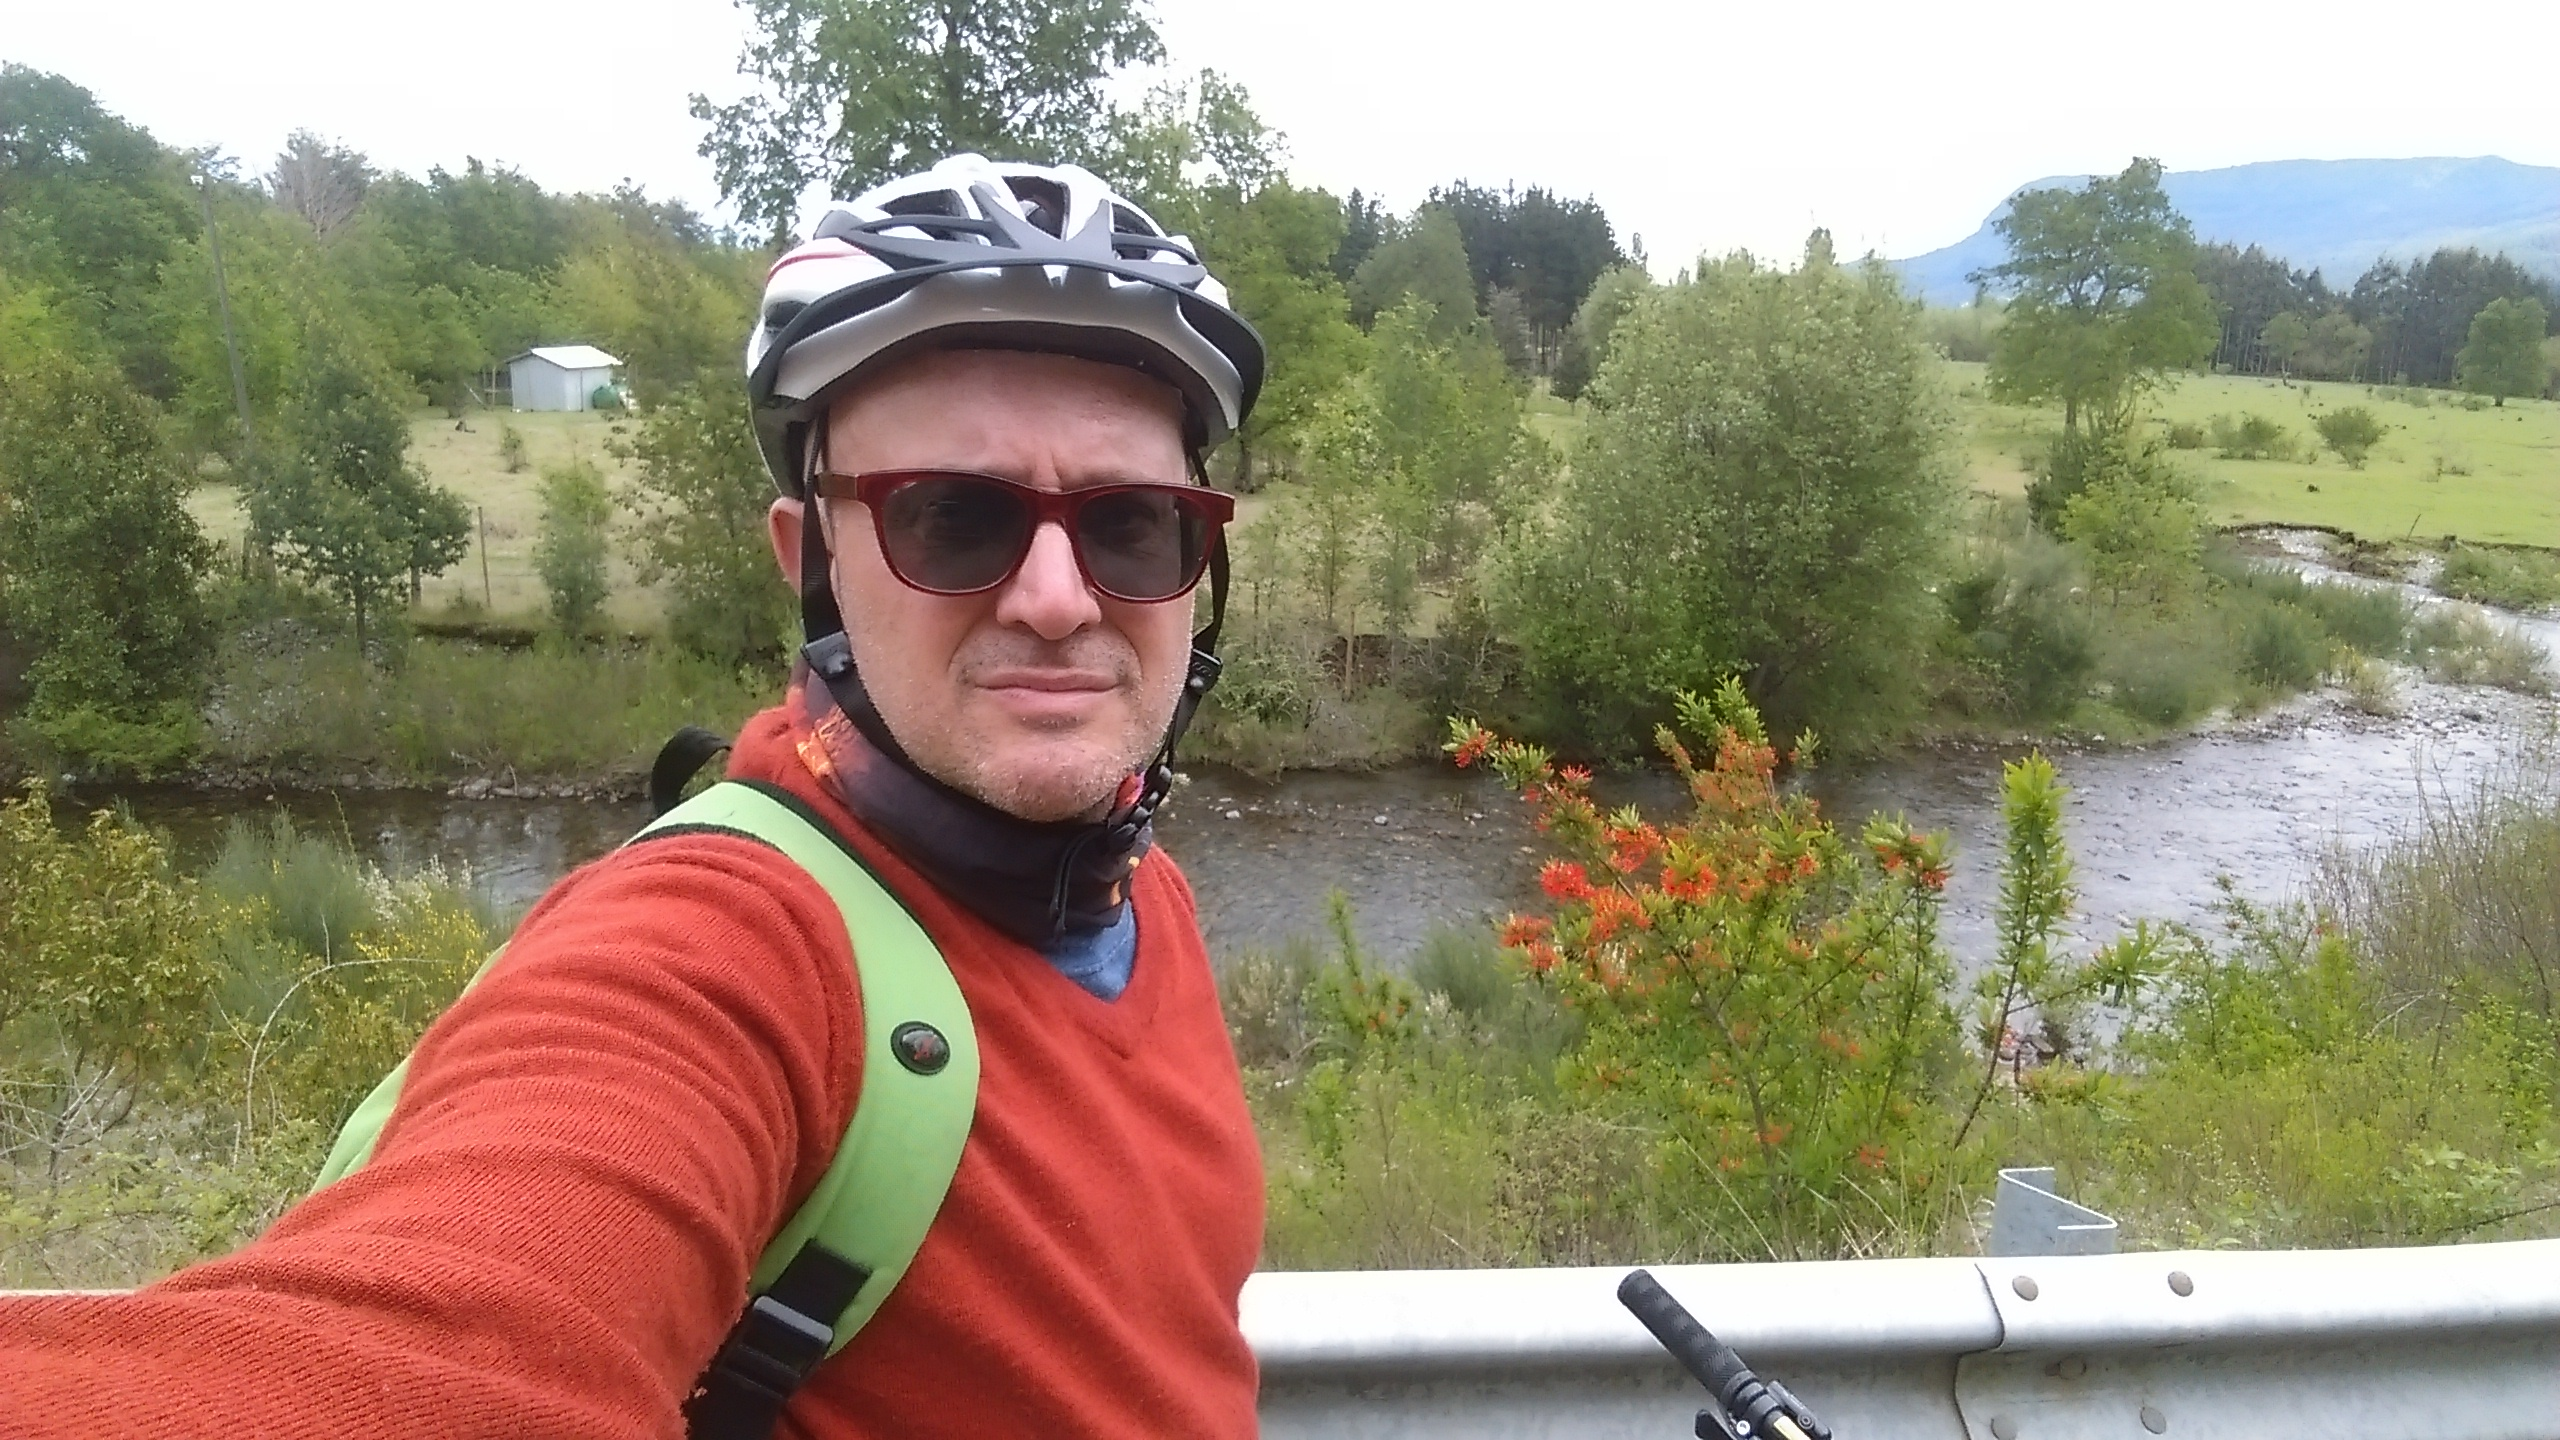 Pucon, Chile, Summit Chile, bicycling, travel, Patagonia, Villarica, Freeride Pucon